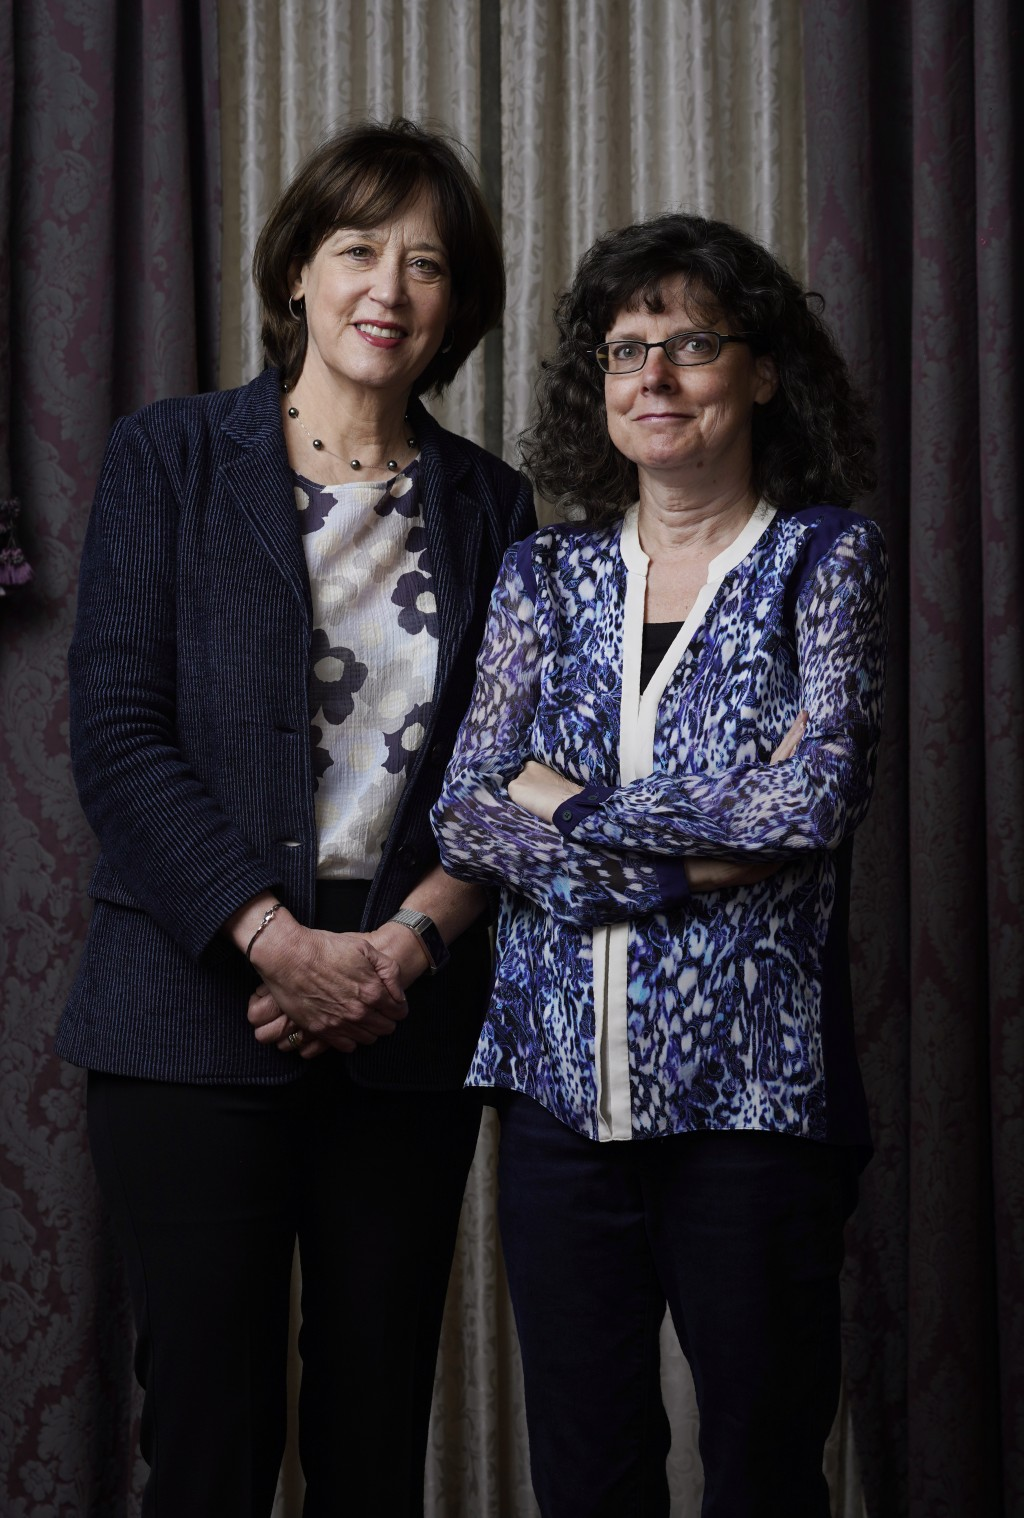 """Betsy West, left, and Julie Cohen, the co-directors of the documentary film """"Julia,"""" pose together for a portrait during the Toronto International Fil..."""